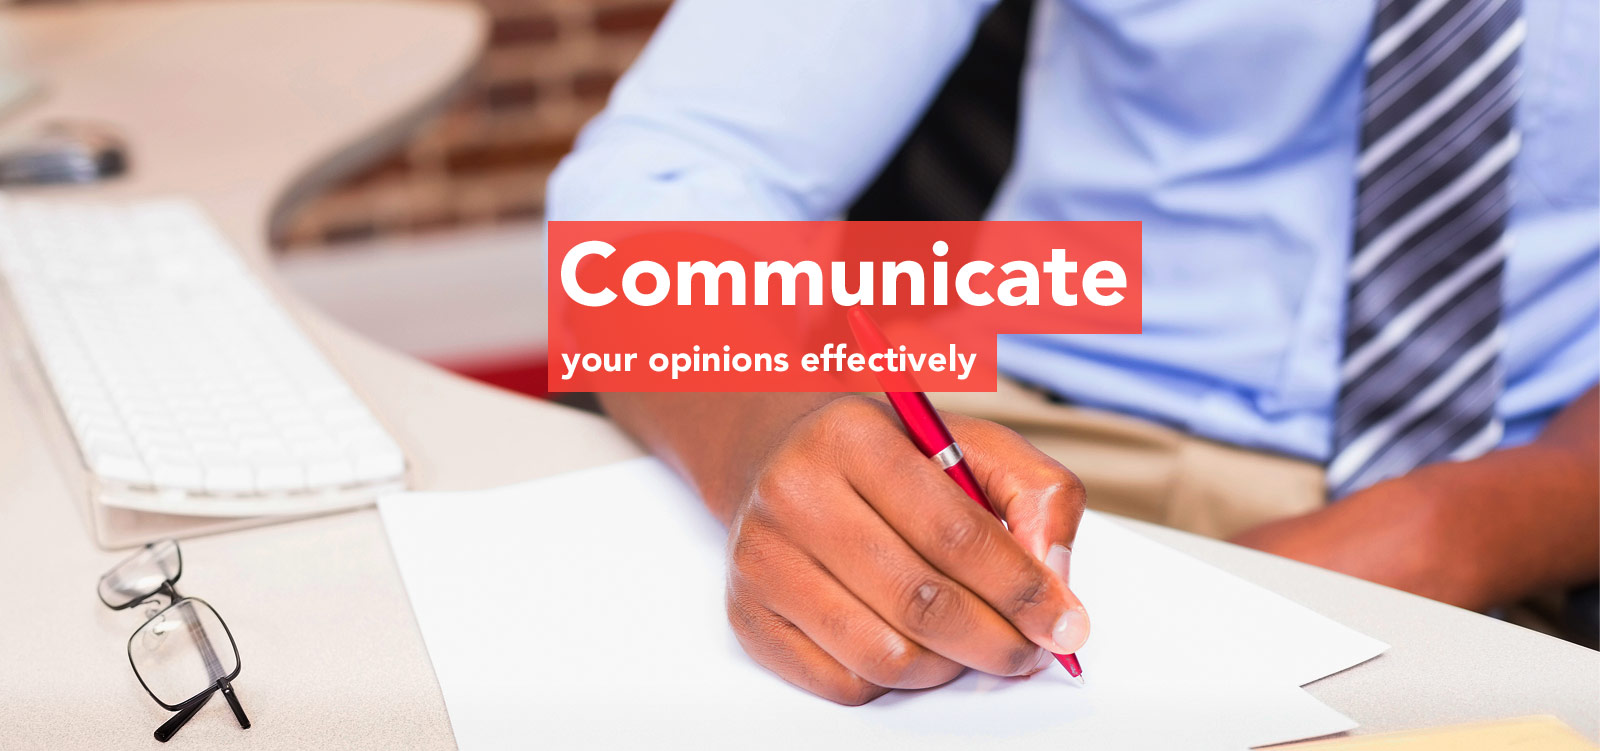 Communicate your opinions effectively